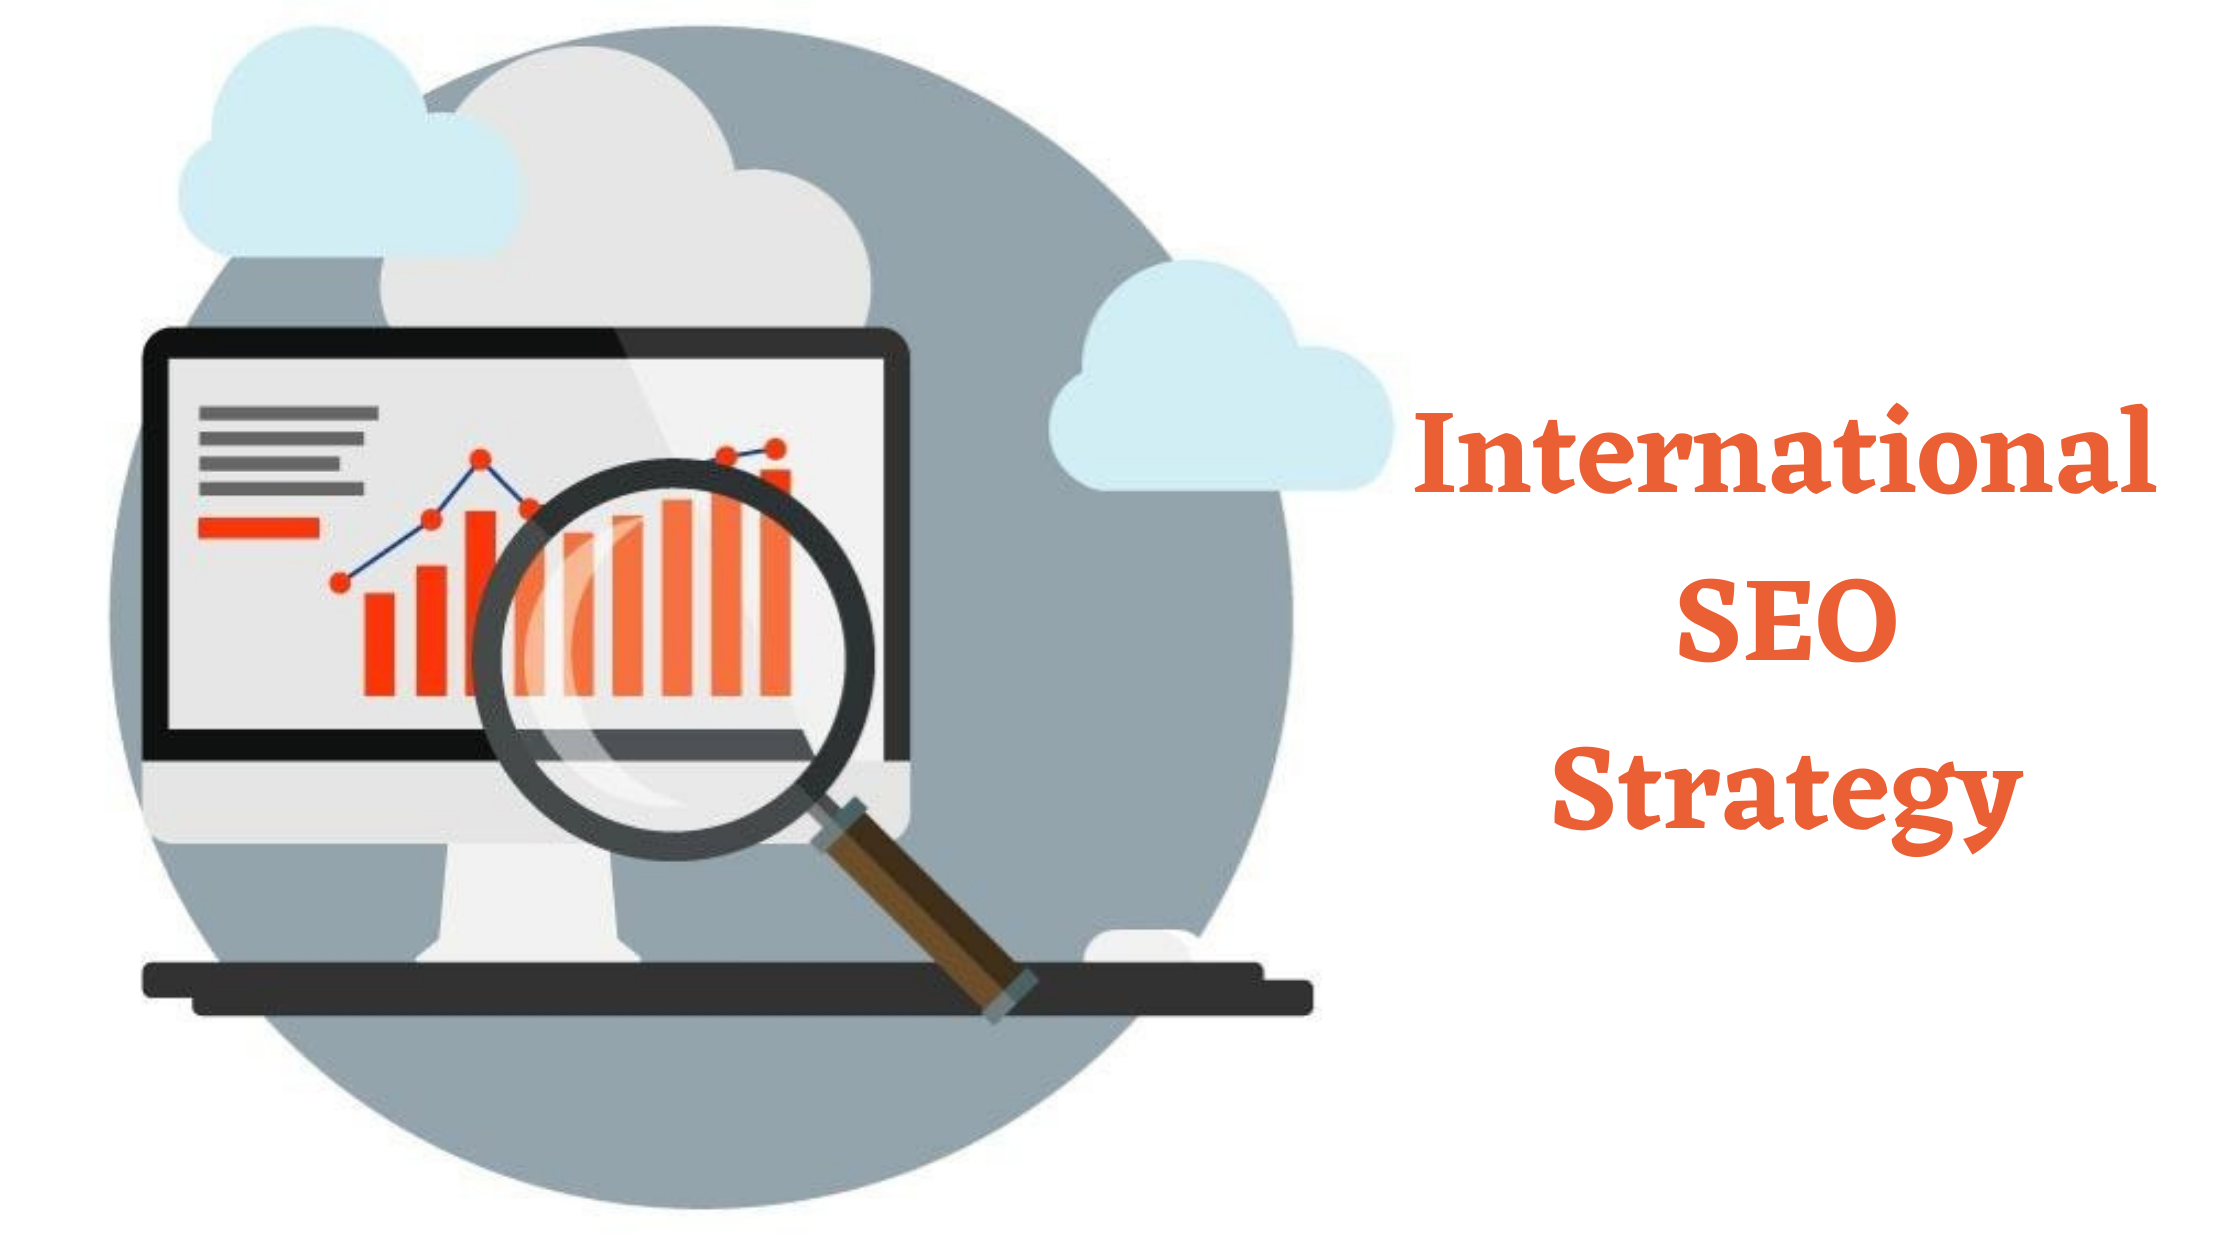 How to Develop an International SEO Strategy